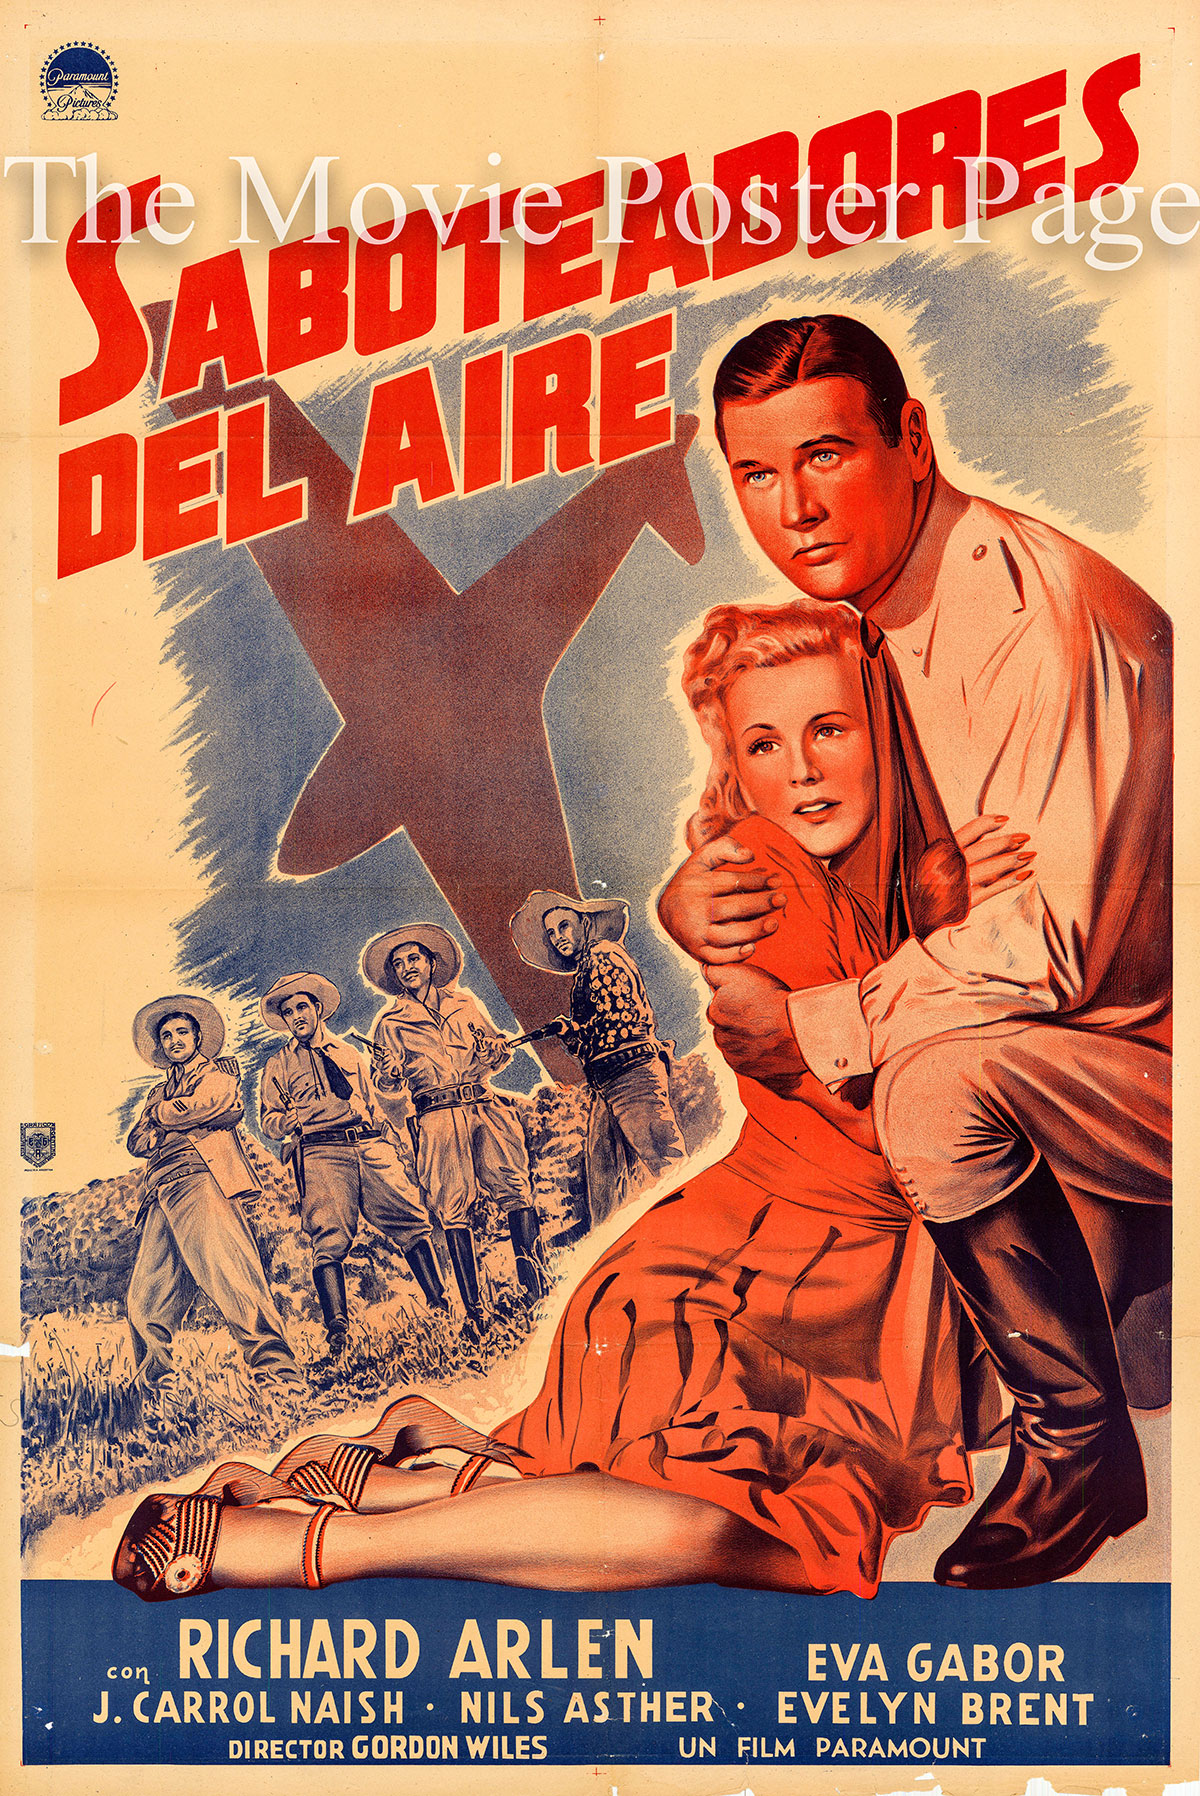 Pictured is an Argentine poster for the 1941 Gordon Wiles film Forced Landing starring Richard Arlen as Dan Kendall.